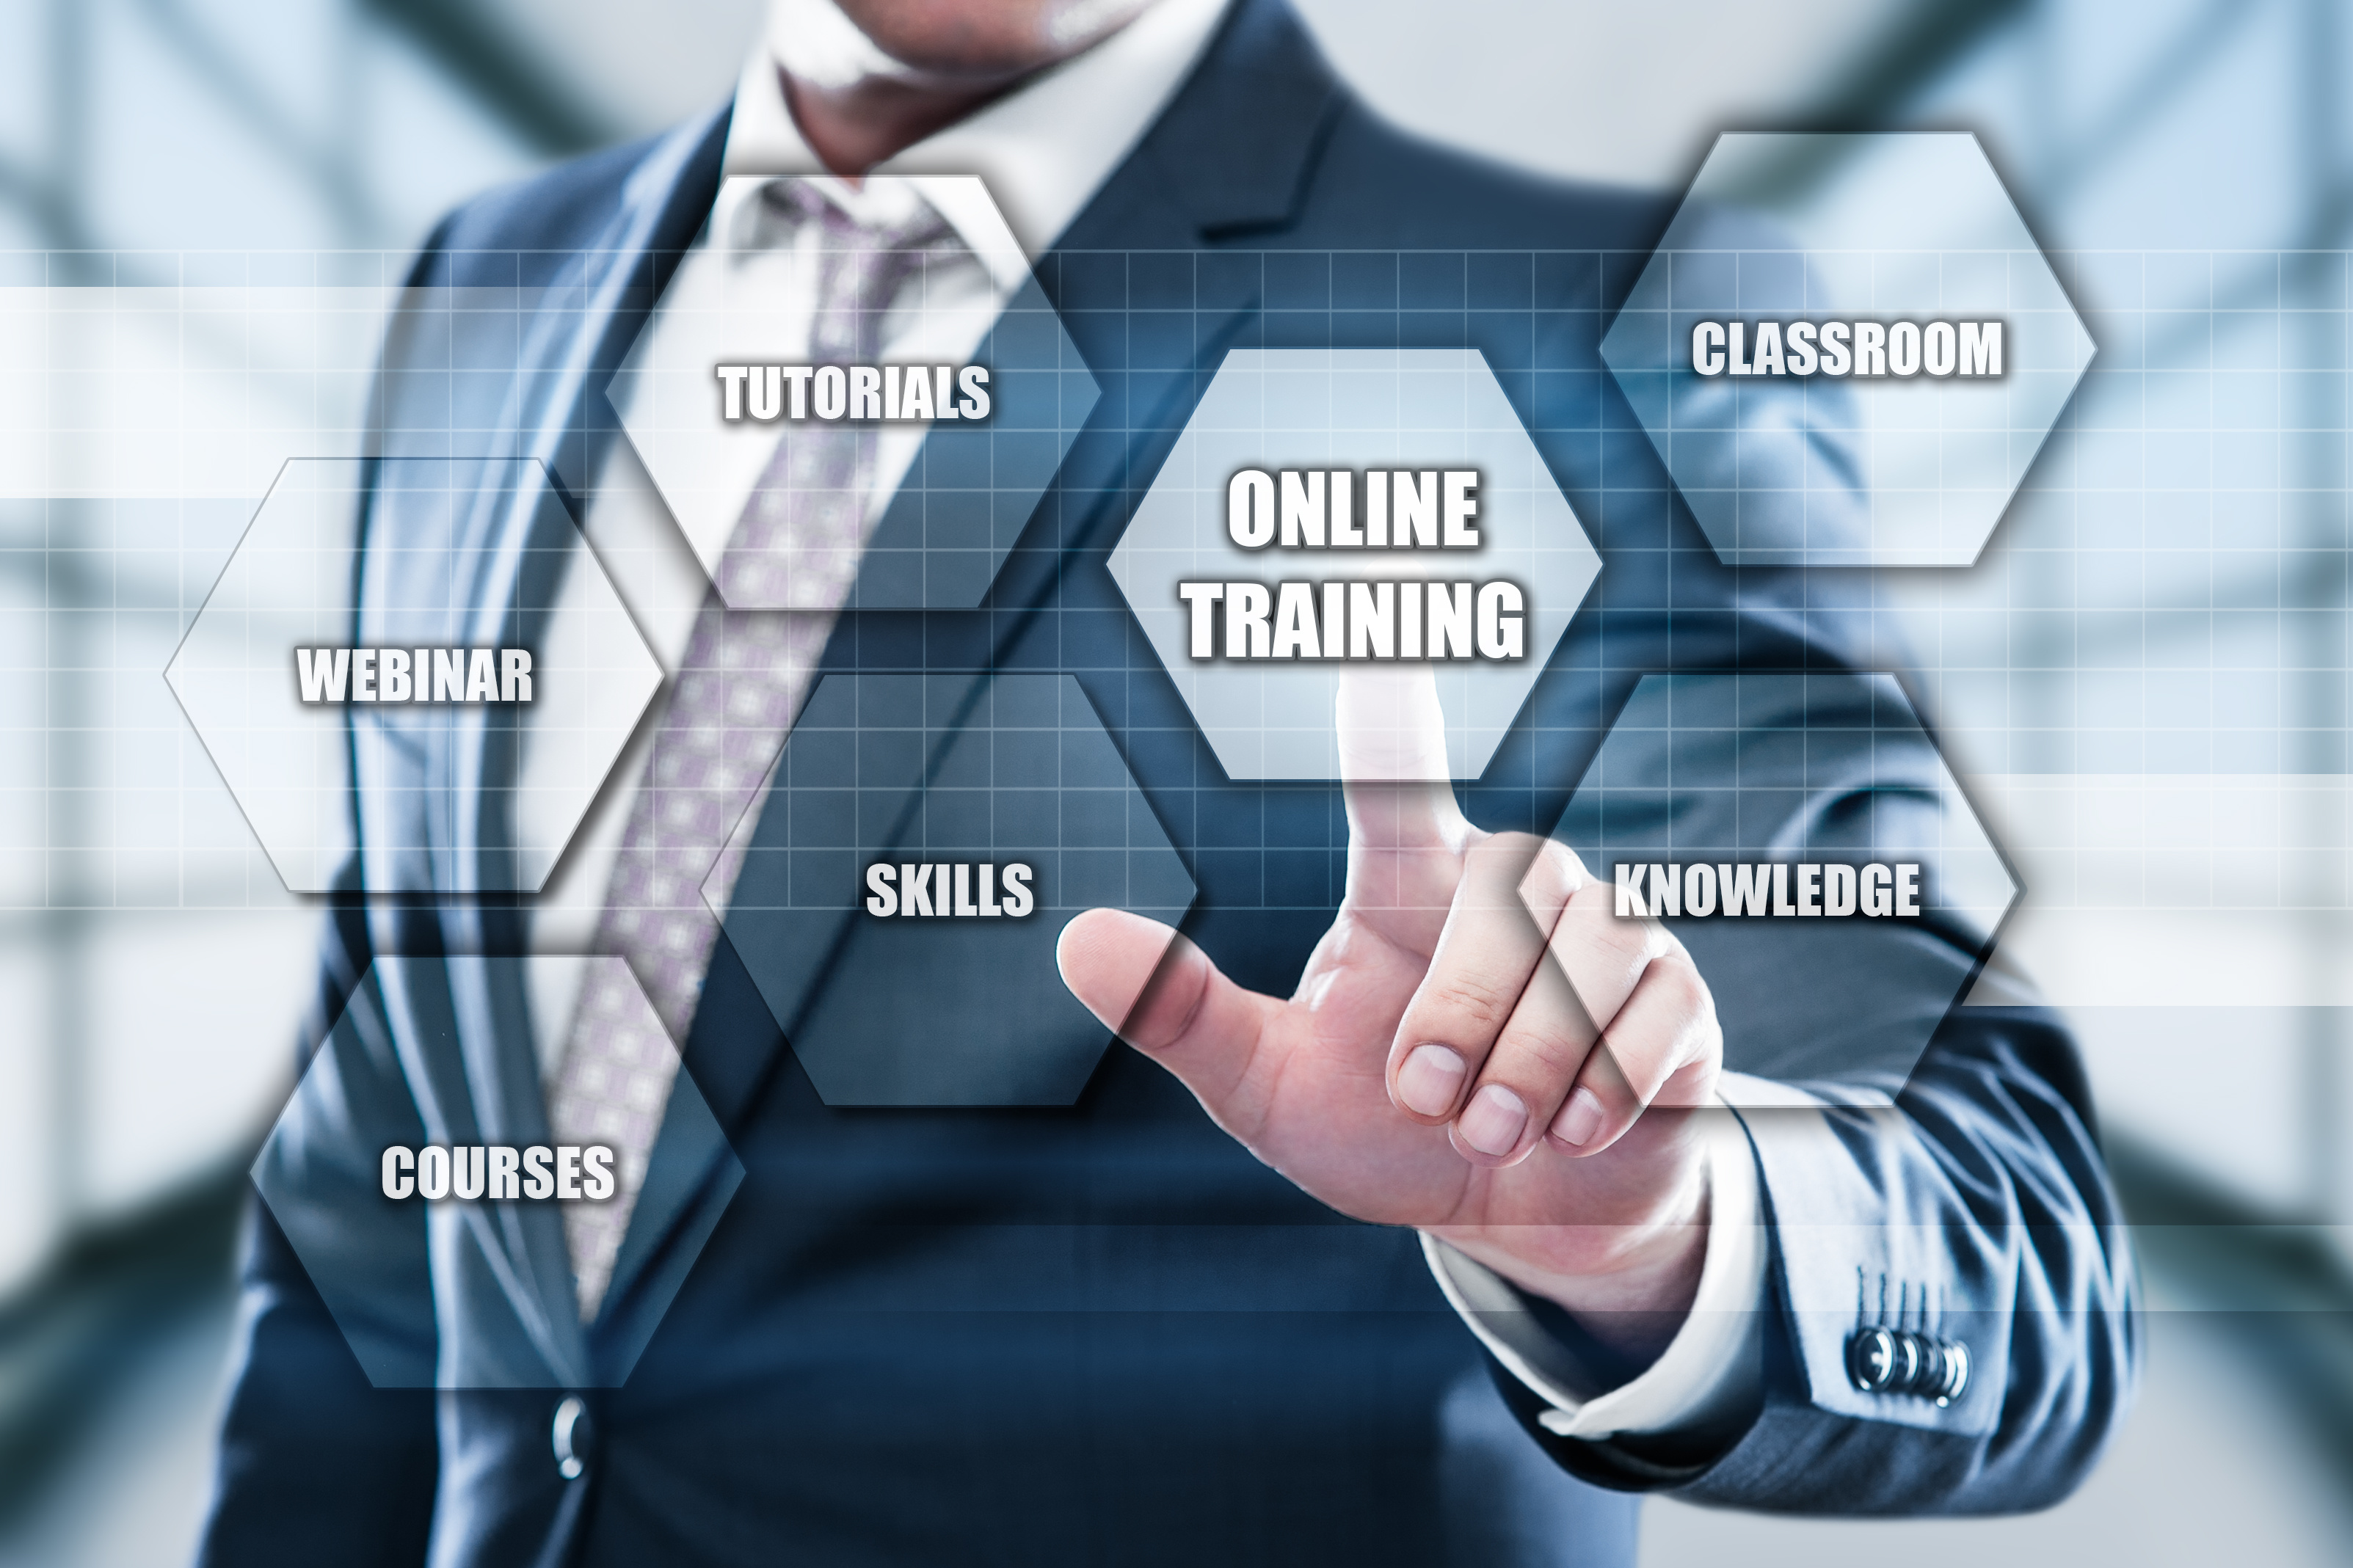 Online Training Webinar E-learning Skills Business Internet Technology Concept